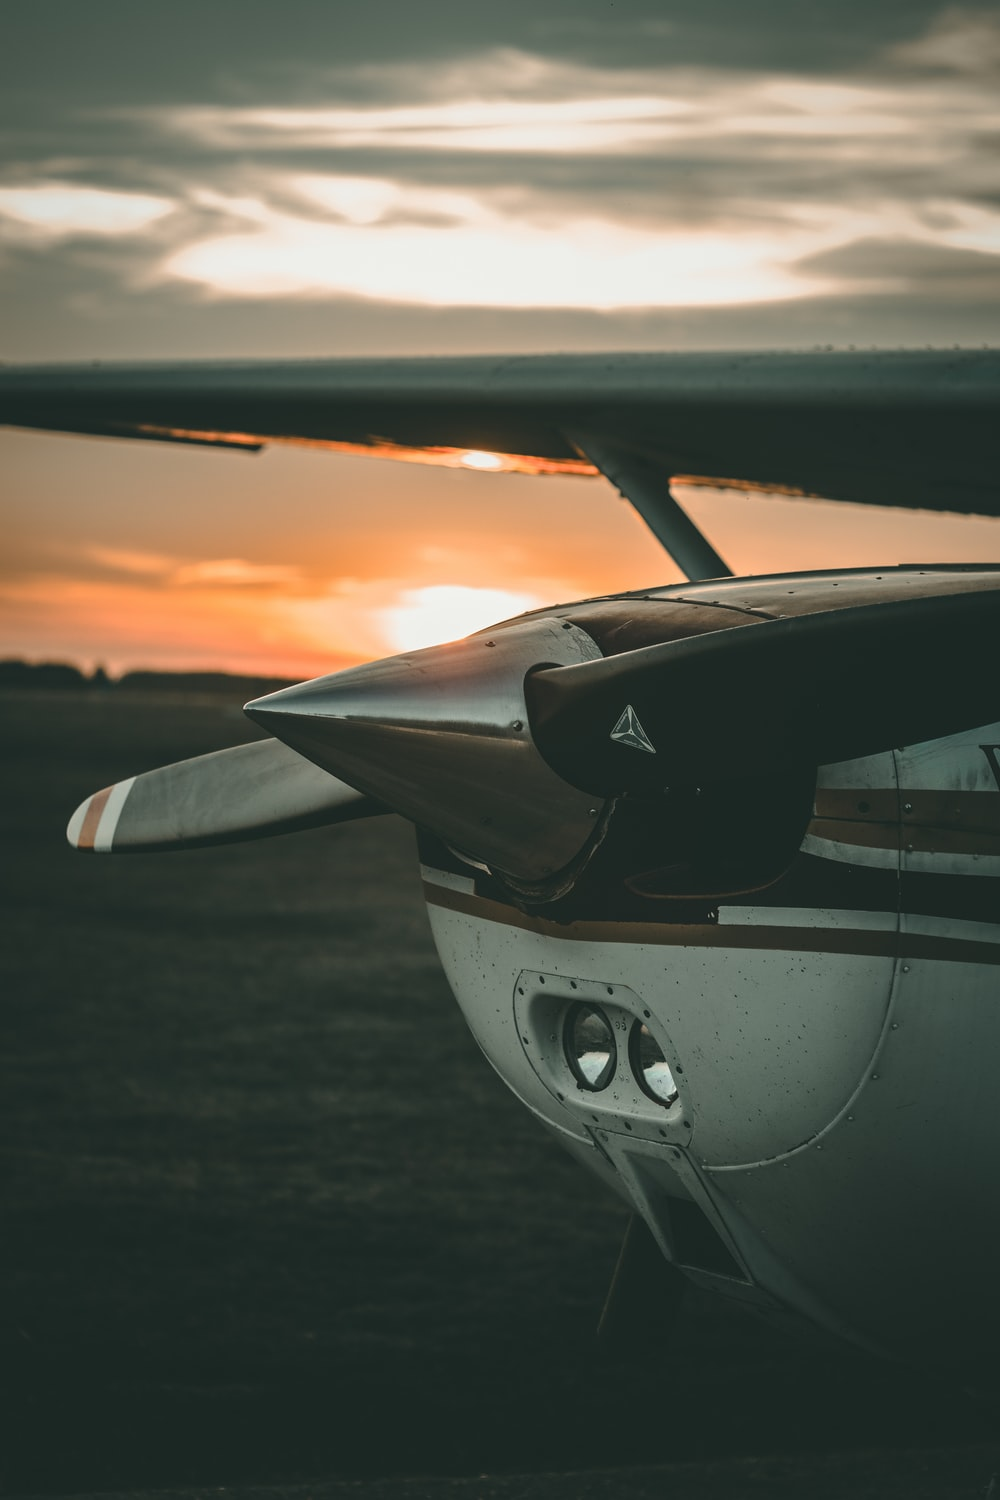 close-up photography of brown and white plane during sunrise